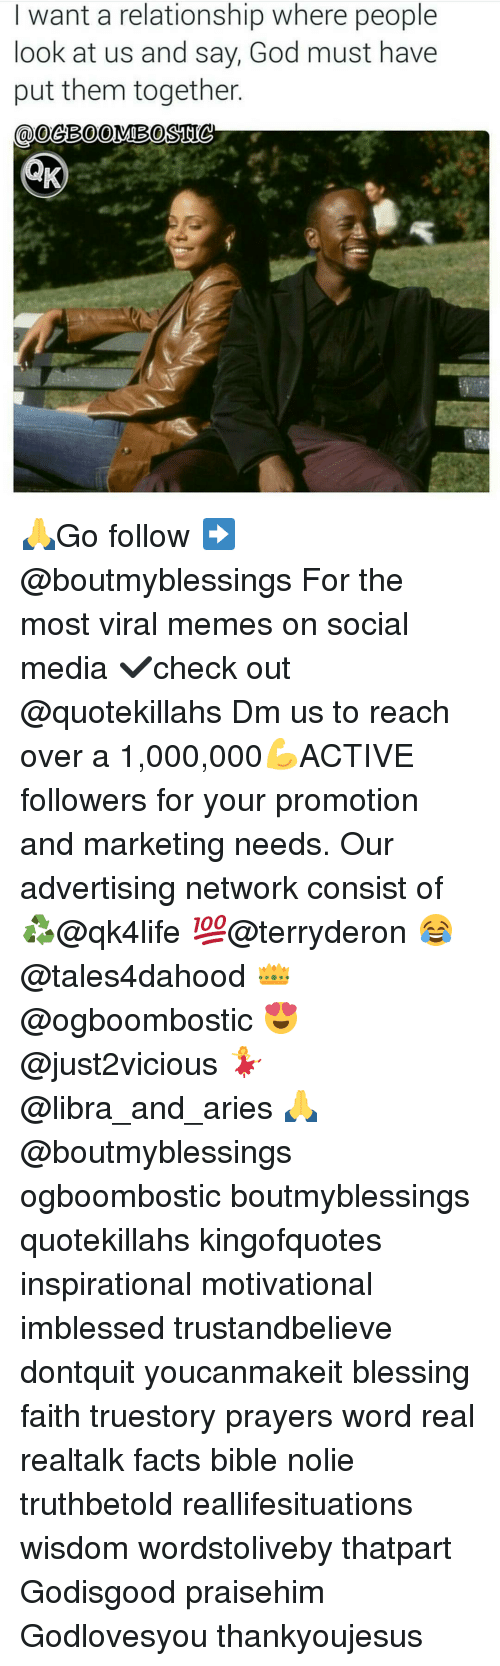 Advertisment: I want a relationship where people  look at us and say, God must have  put them together  @OeB00MOBOSTIC 🙏Go follow ➡@boutmyblessings For the most viral memes on social media ✔check out @quotekillahs Dm us to reach over a 1,000,000💪ACTIVE followers for your promotion and marketing needs. Our advertising network consist of ♻@qk4life 💯@terryderon 😂@tales4dahood 👑@ogboombostic 😍@just2vicious 💃@libra_and_aries 🙏@boutmyblessings ogboombostic boutmyblessings quotekillahs kingofquotes inspirational motivational imblessed trustandbelieve dontquit youcanmakeit blessing faith truestory prayers word real realtalk facts bible nolie truthbetold reallifesituations wisdom wordstoliveby thatpart Godisgood praisehim Godlovesyou thankyoujesus